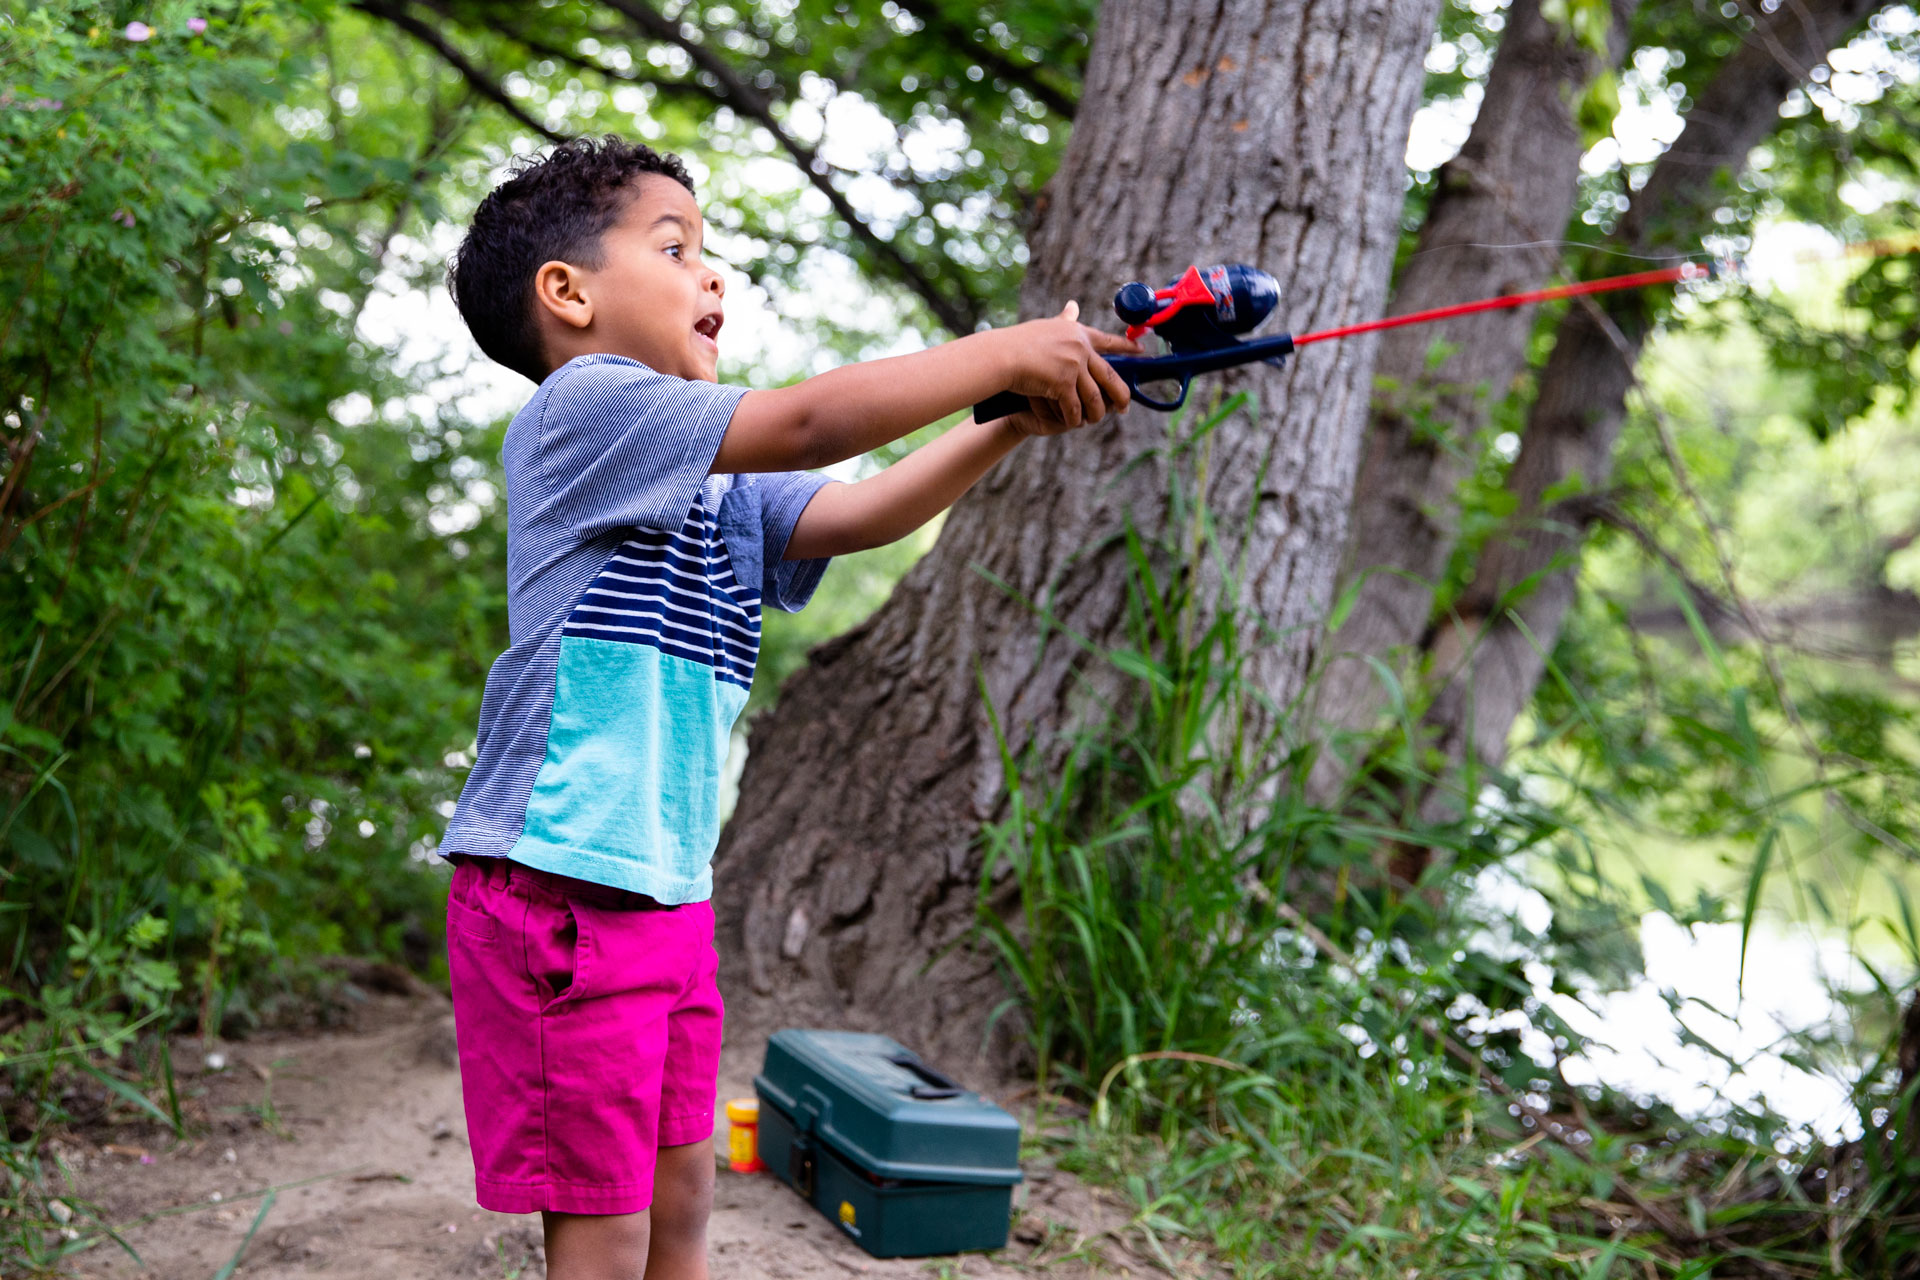 boy casting his fishing line into the river with a wide amazed smile on is face